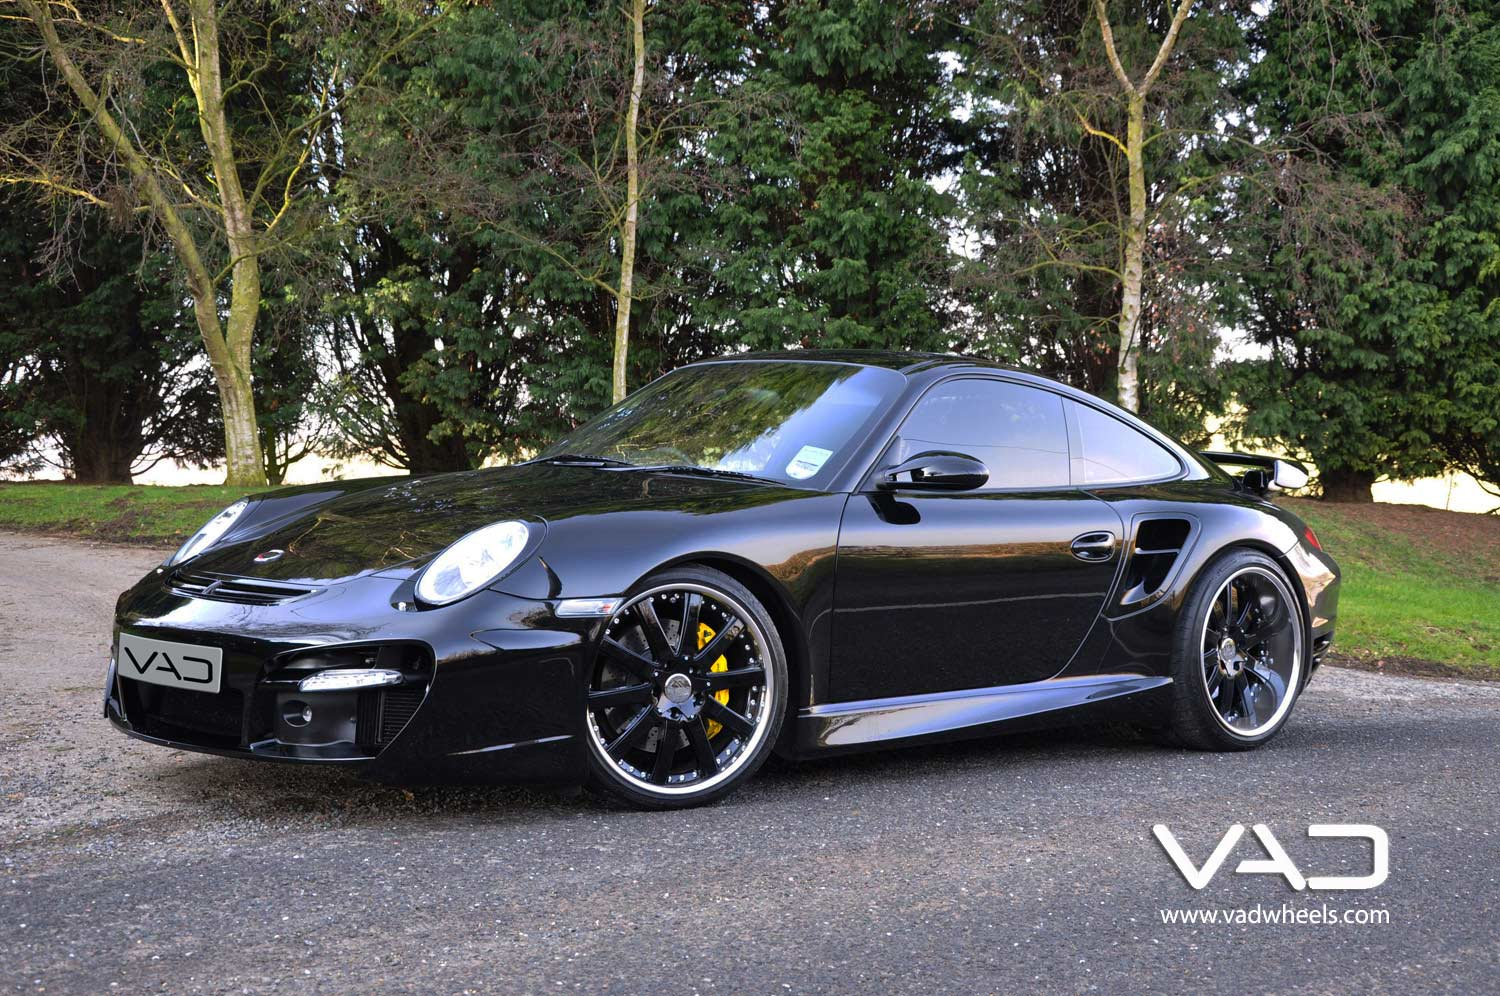 Porsche-997-Turbo-Fitted-With-20''-Altstadt-F100-Gloss-Black